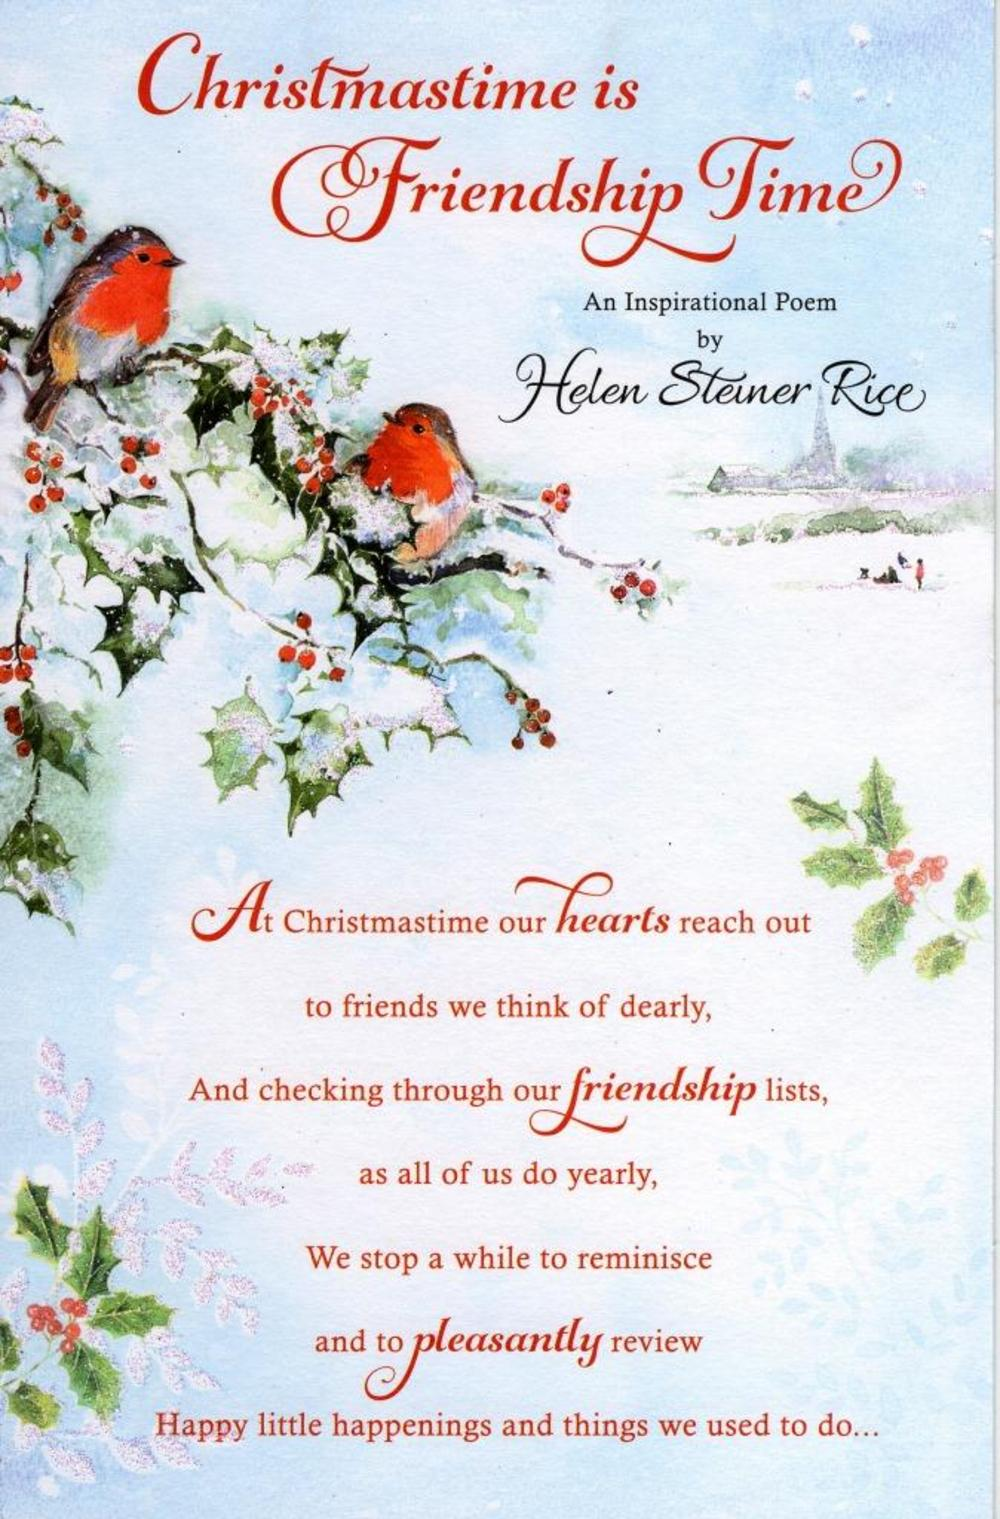 helen steiner rice christmas friendship greeting card